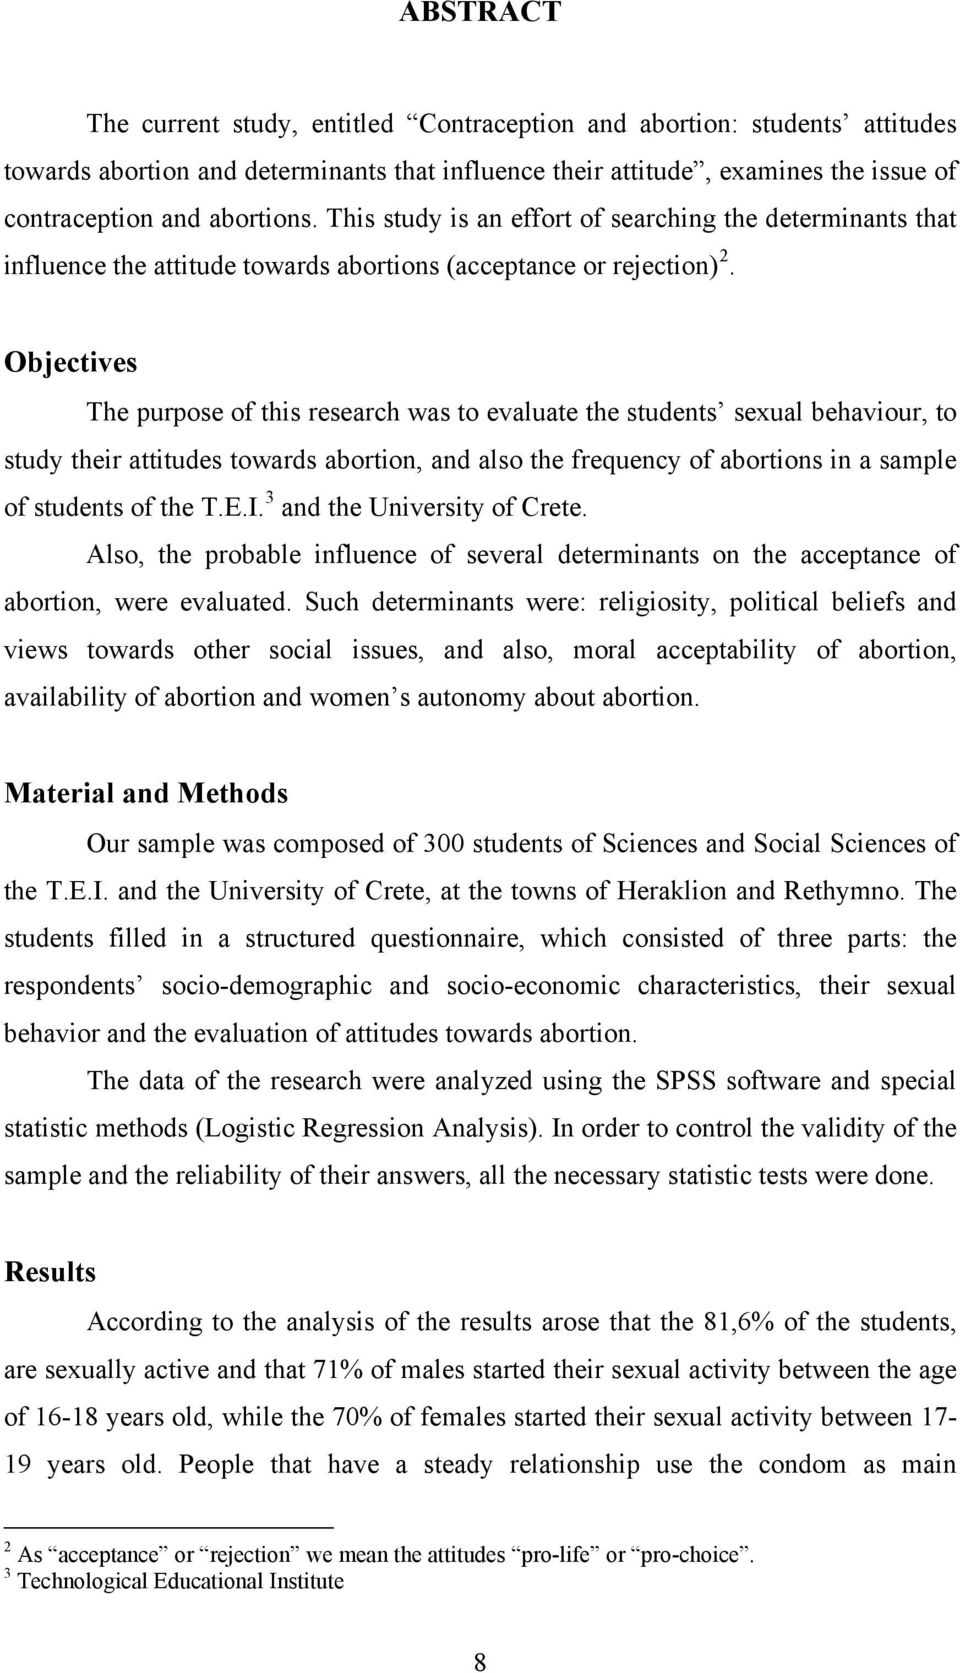 Objectives The purpose of this research was to evaluate the students sexual behaviour, to study their attitudes towards abortion, and also the frequency of abortions in a sample of students of the T.